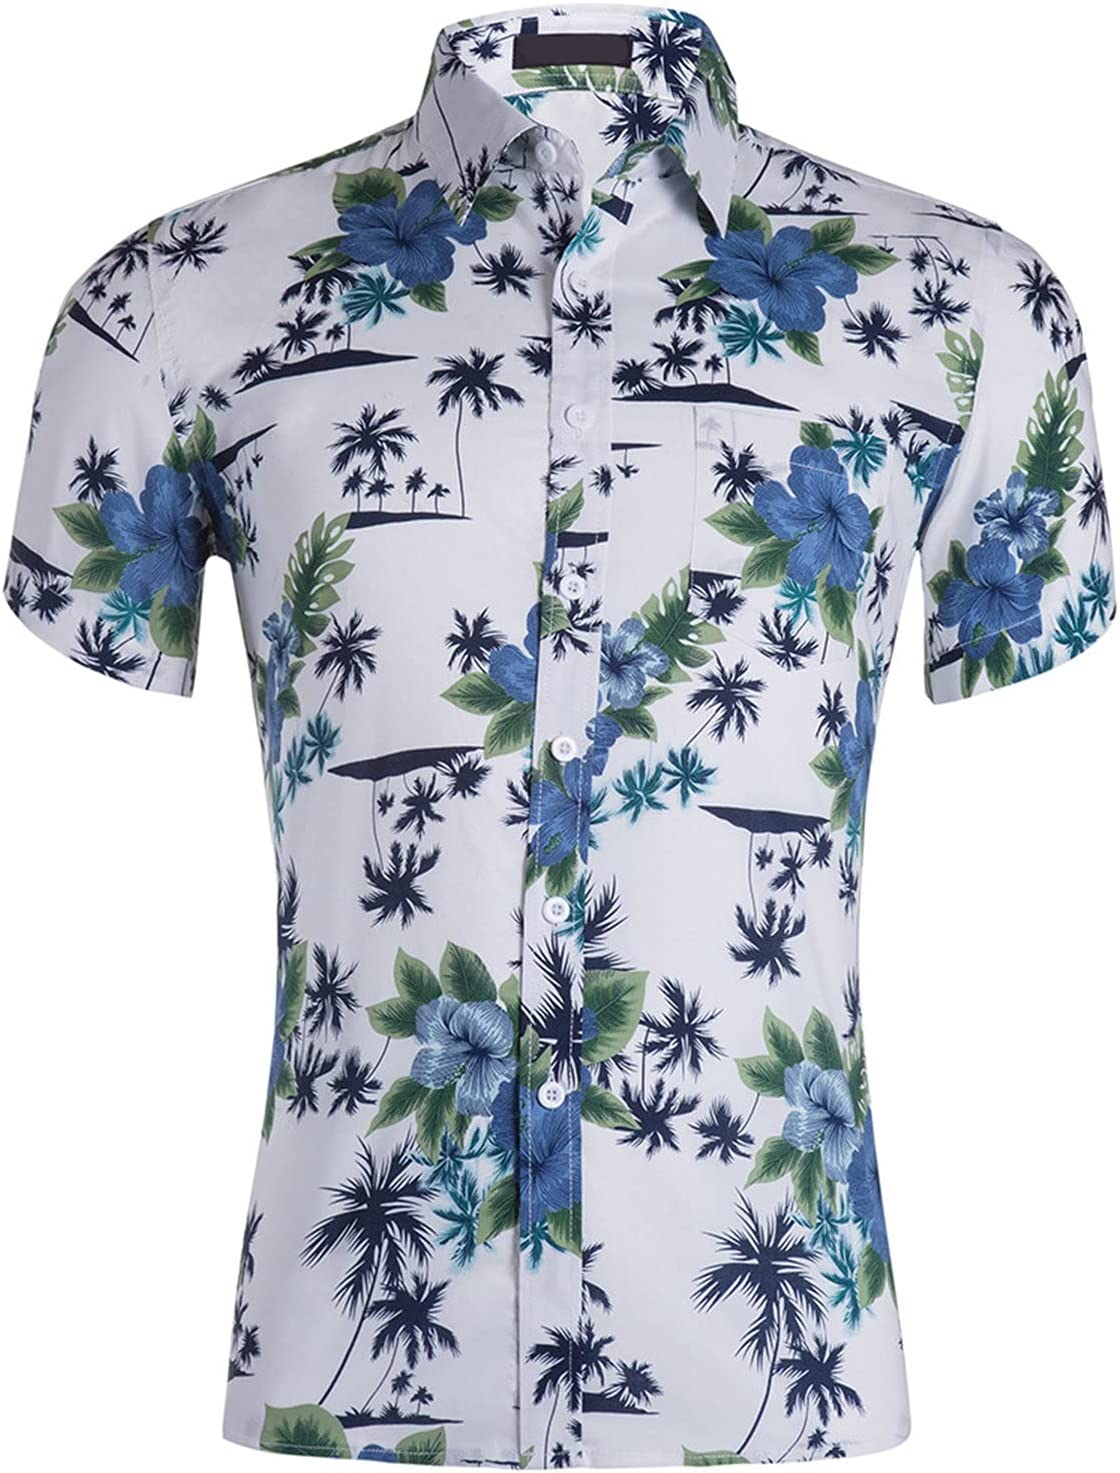 Men's Casual Printed Short Sleeve Slim Fit Button Down Hawaiian Shirts Hipster Hip Hop Pattern Shirt (White 4,X-Large)